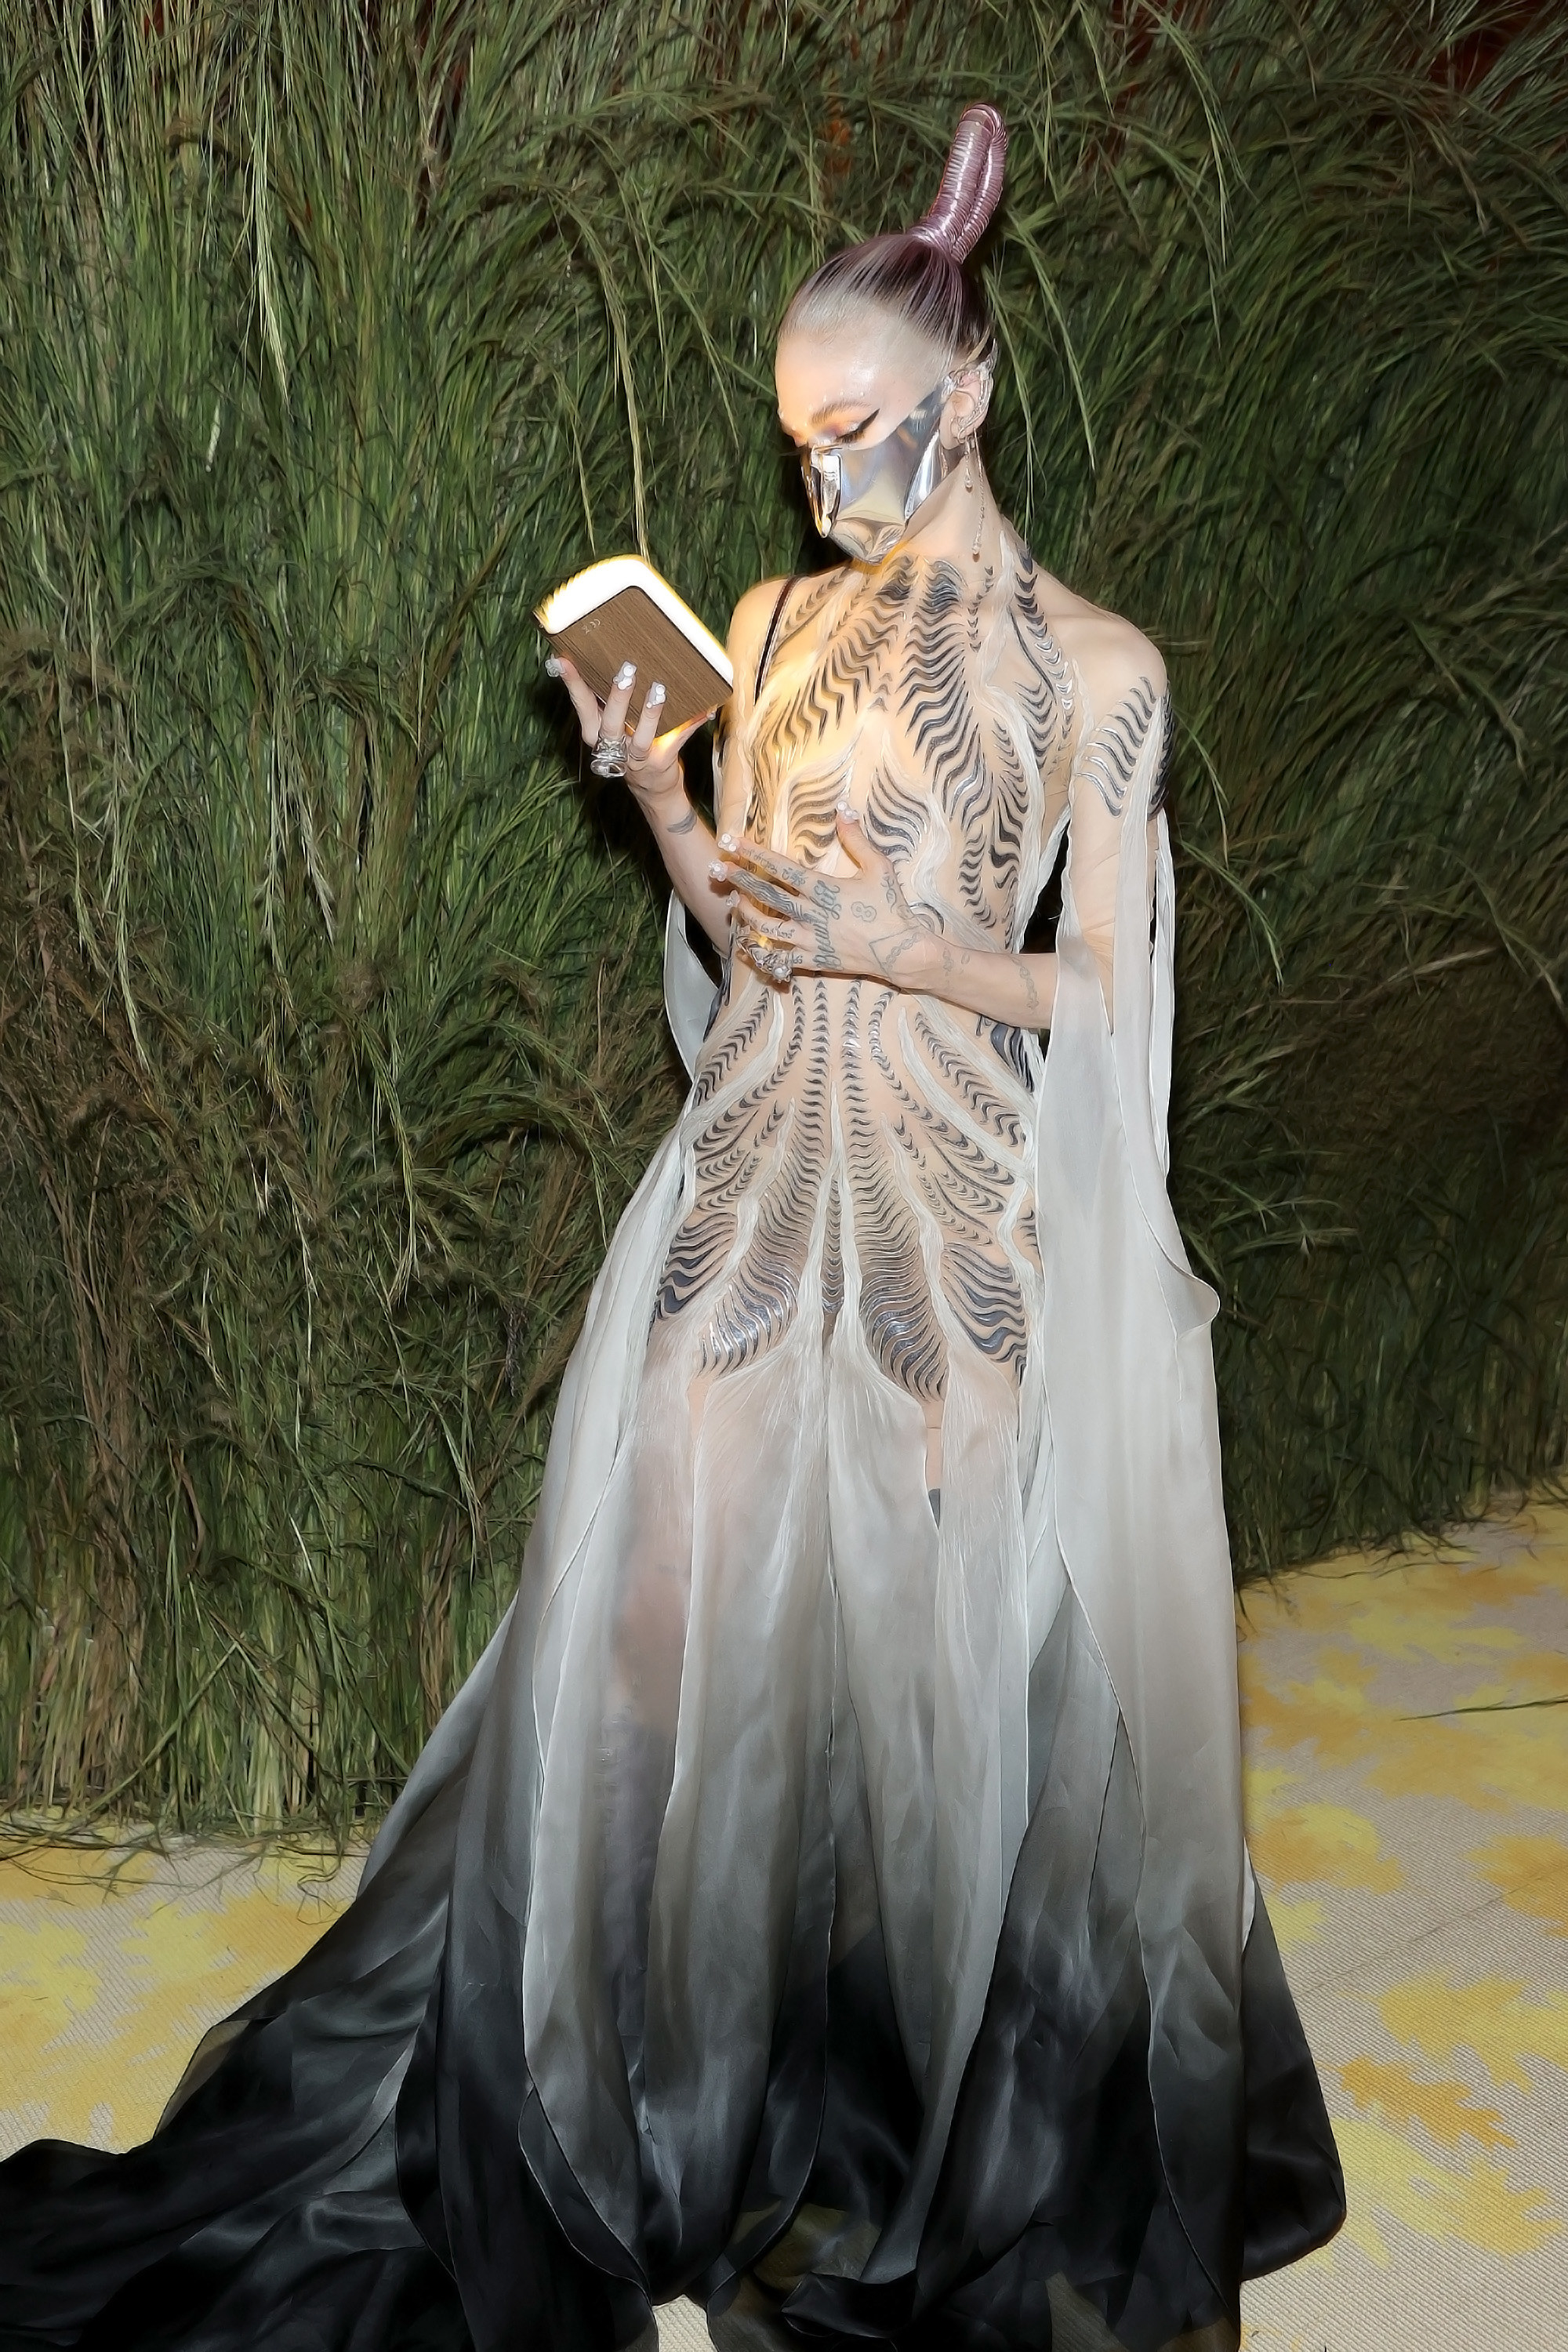 Grimes reads from the book, which is glowing with light